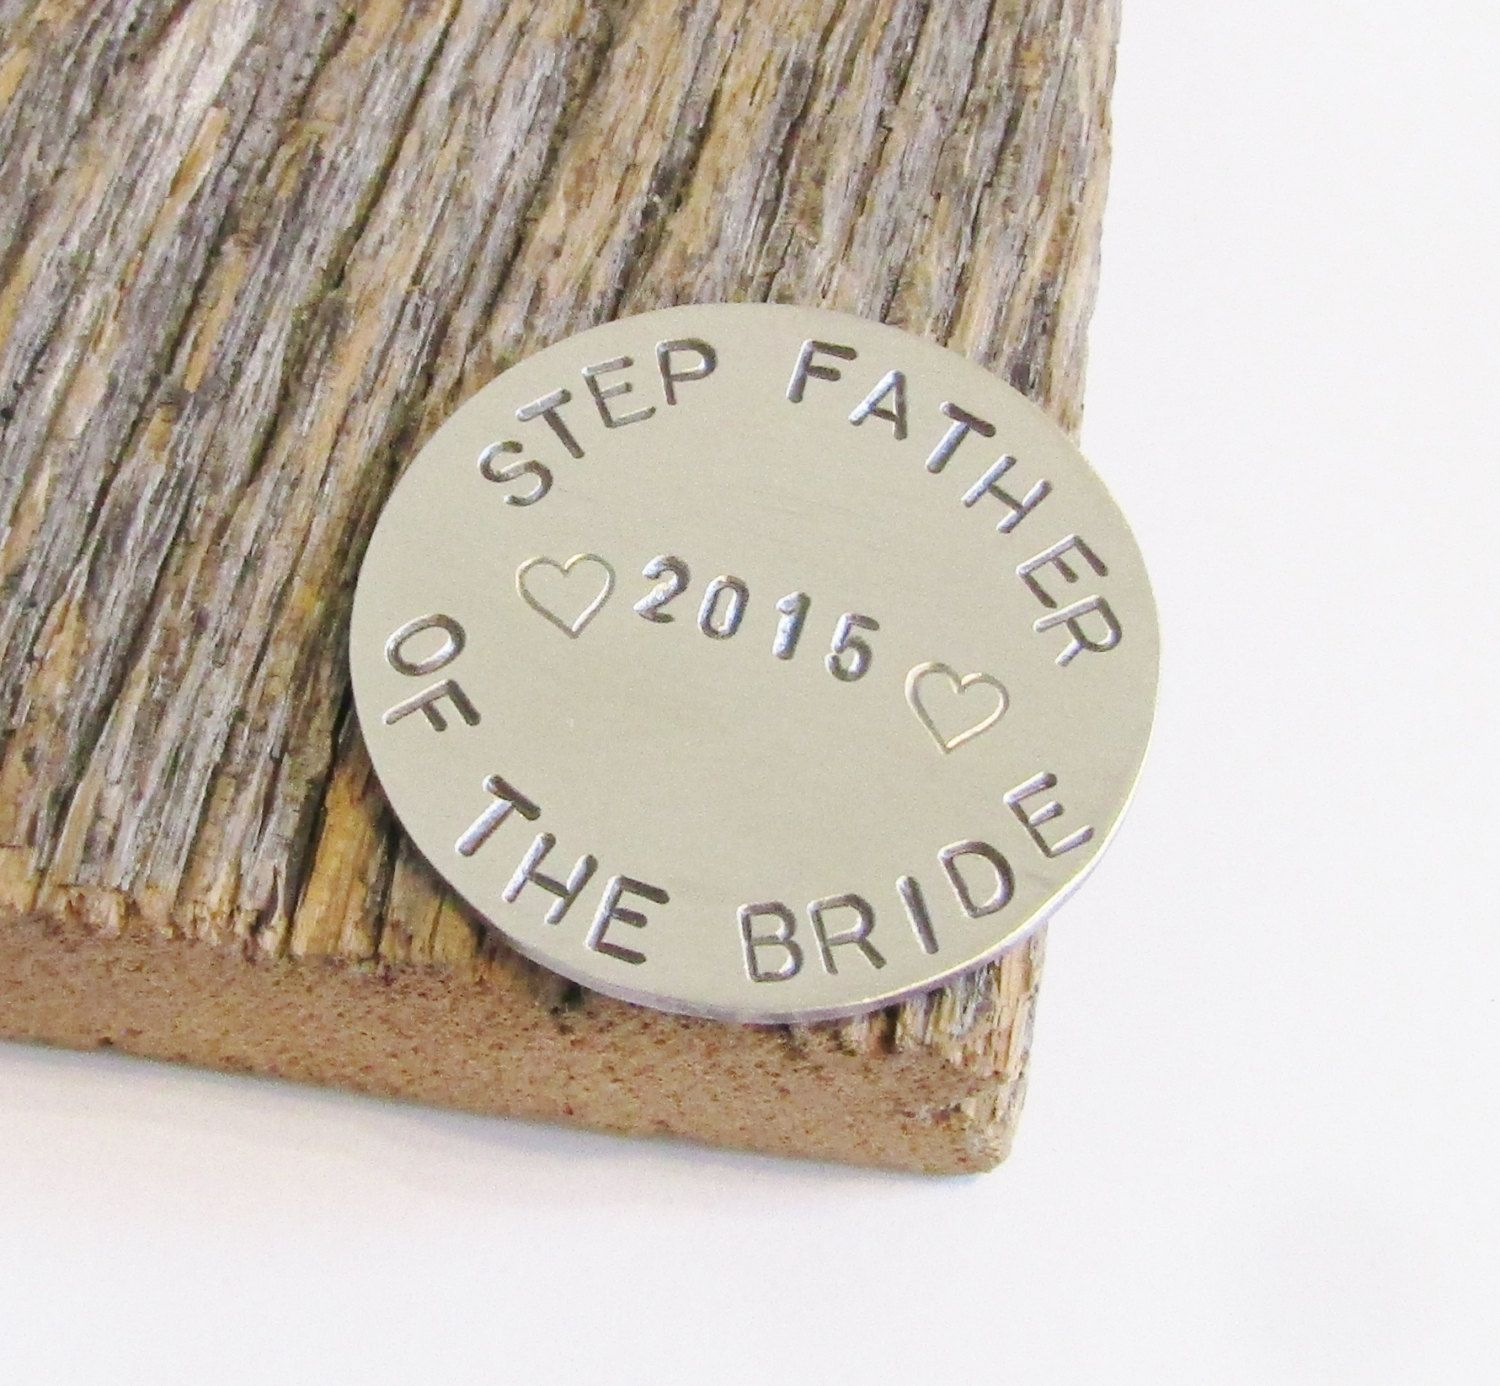 Gift for step father of the bride gift golfing ball marker